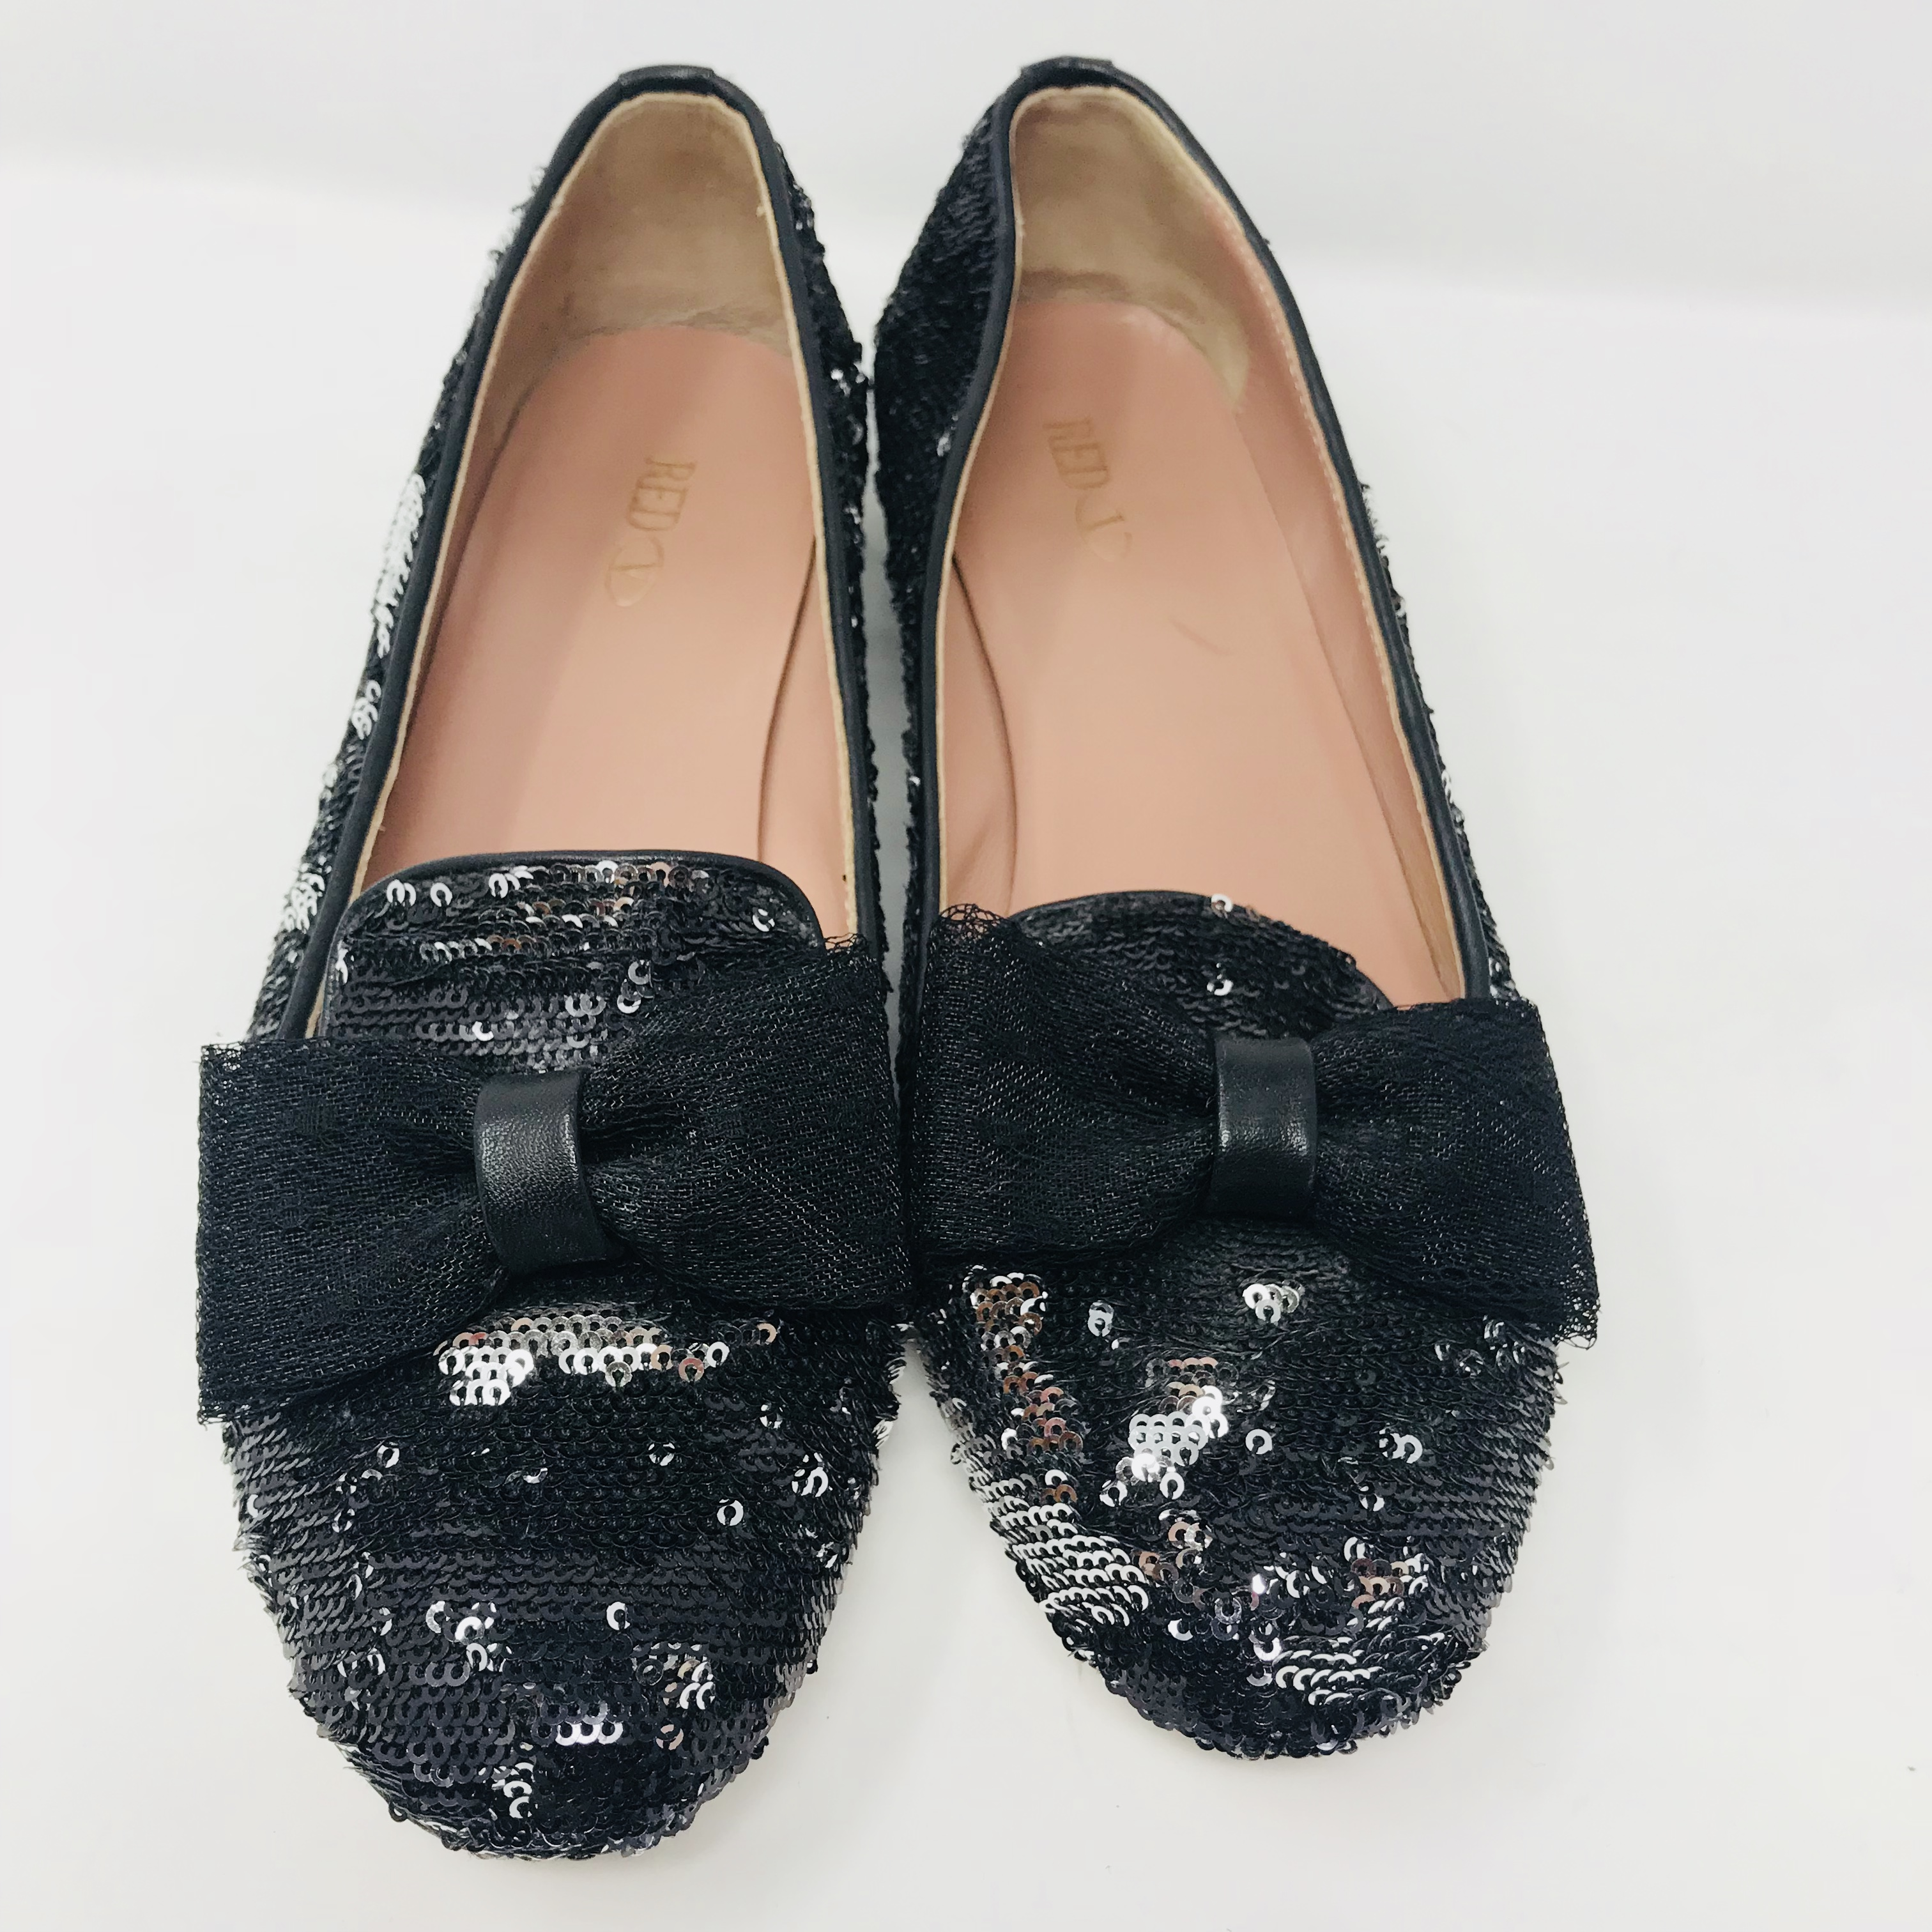 Valentino Shoes Price: $98.99